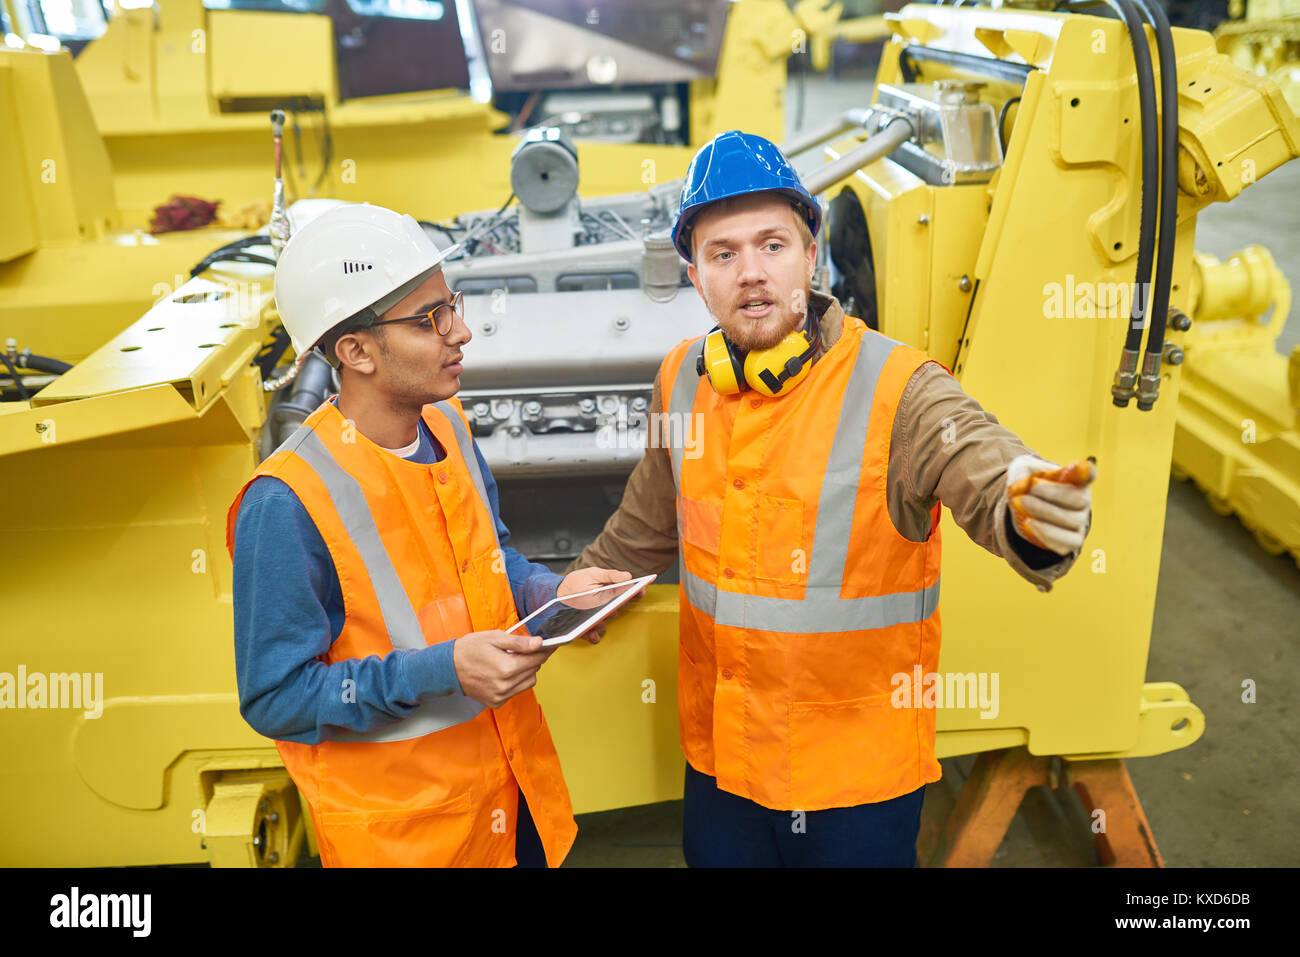 Colleagues Solving Faced Issue Together - Stock Image